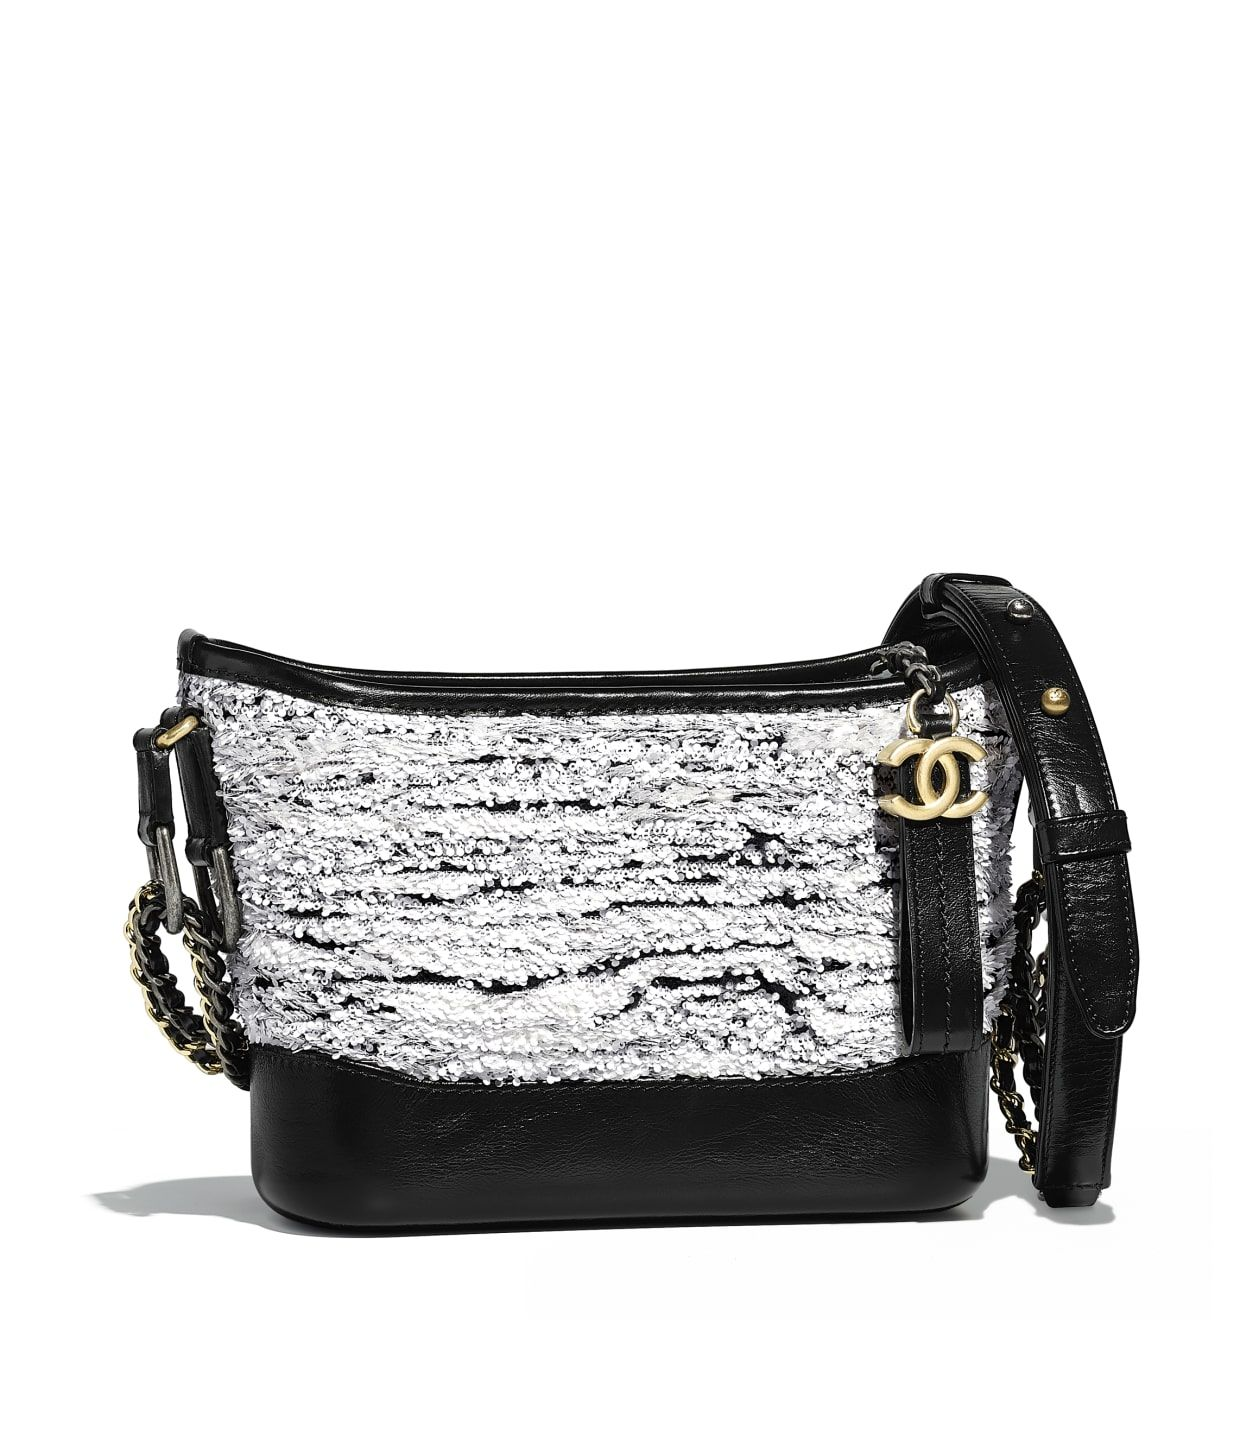 14ee319af38016 Discover the CHANEL Sequins, Wool, Calfskin, Silver-Tone & Gold-Tone Metal  White & Black CHANEL'S GABRIELLE Small Hobo Bag, and explore the artistry  and ...